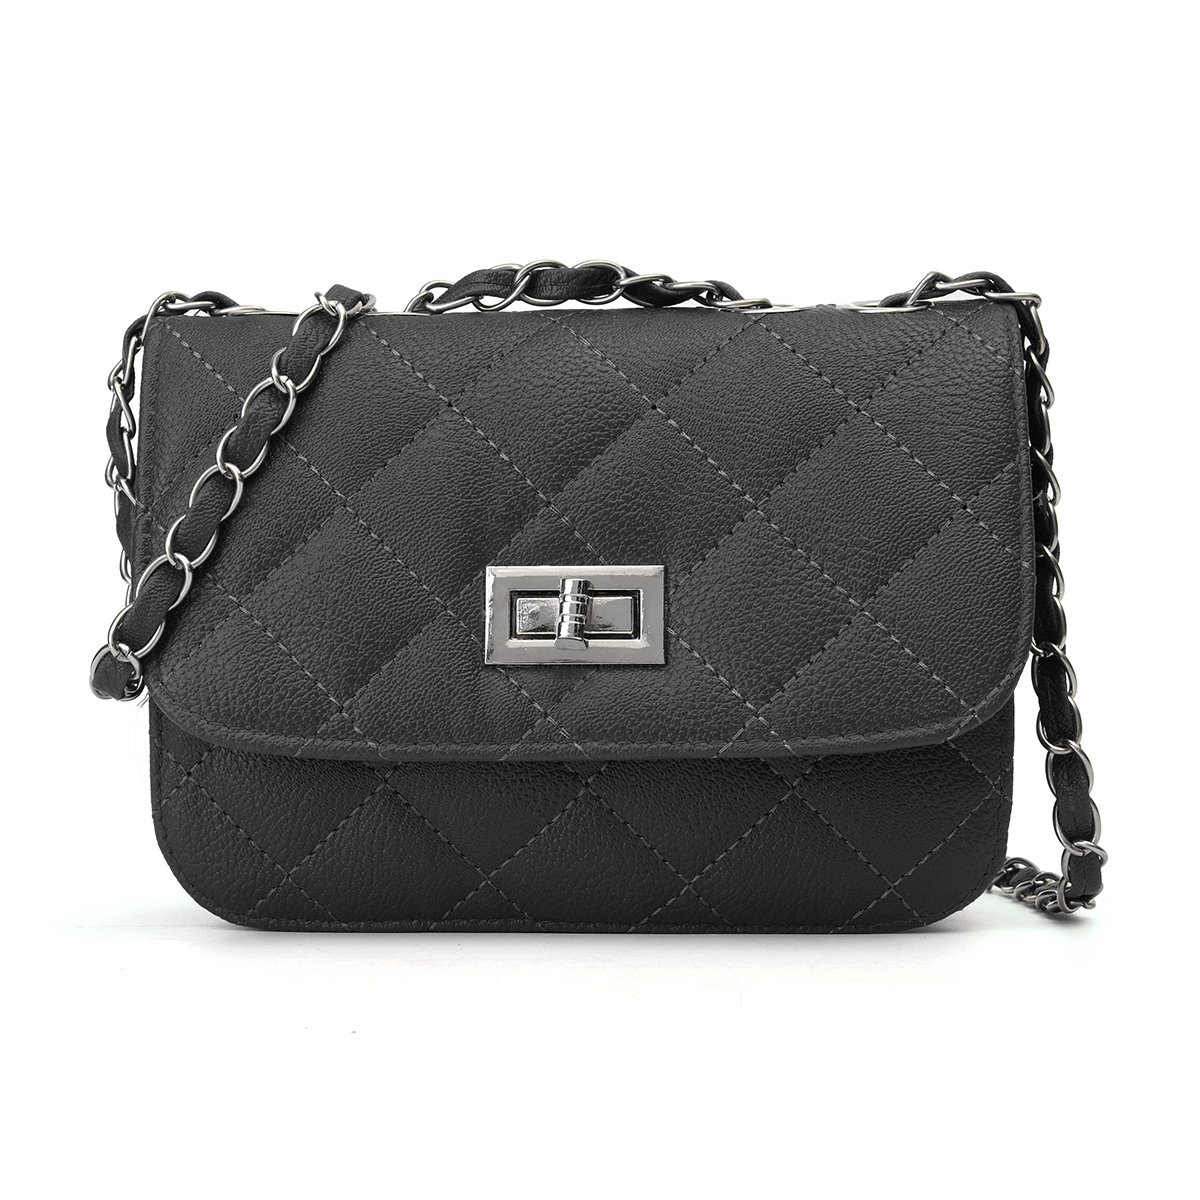 Mini Crossbody Bag, OURBAG PU Leather Quilted Cross Body Shoulder Clutch Purse Evening Handbag with Chain Black